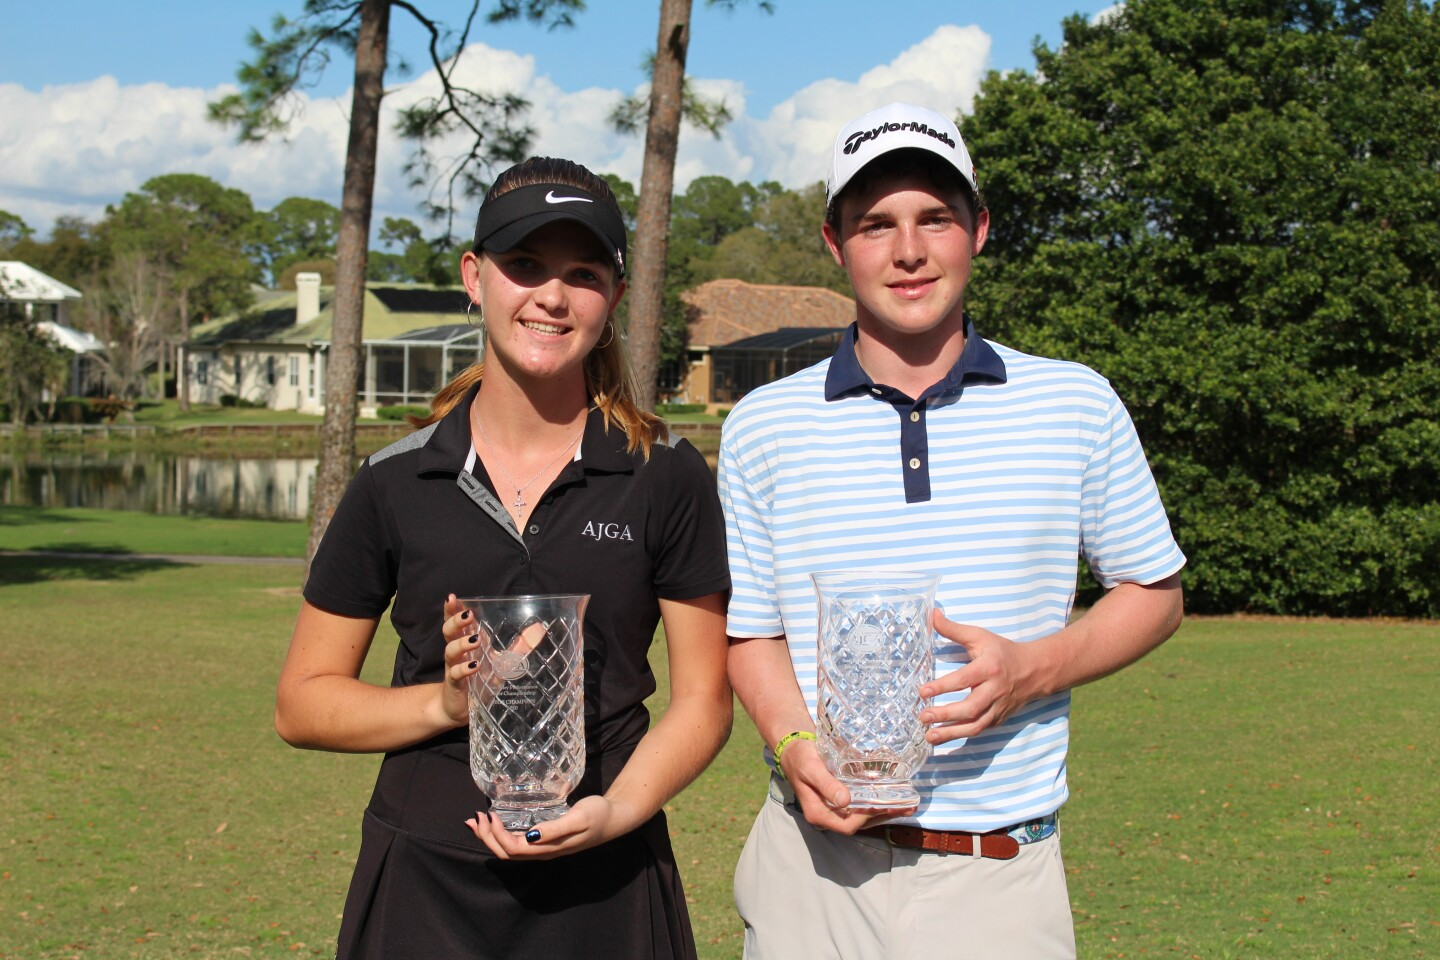 Jacqueline Putrino - William Love  - 2020 - Sean Foley Performance Junior Championship  (1).JPG